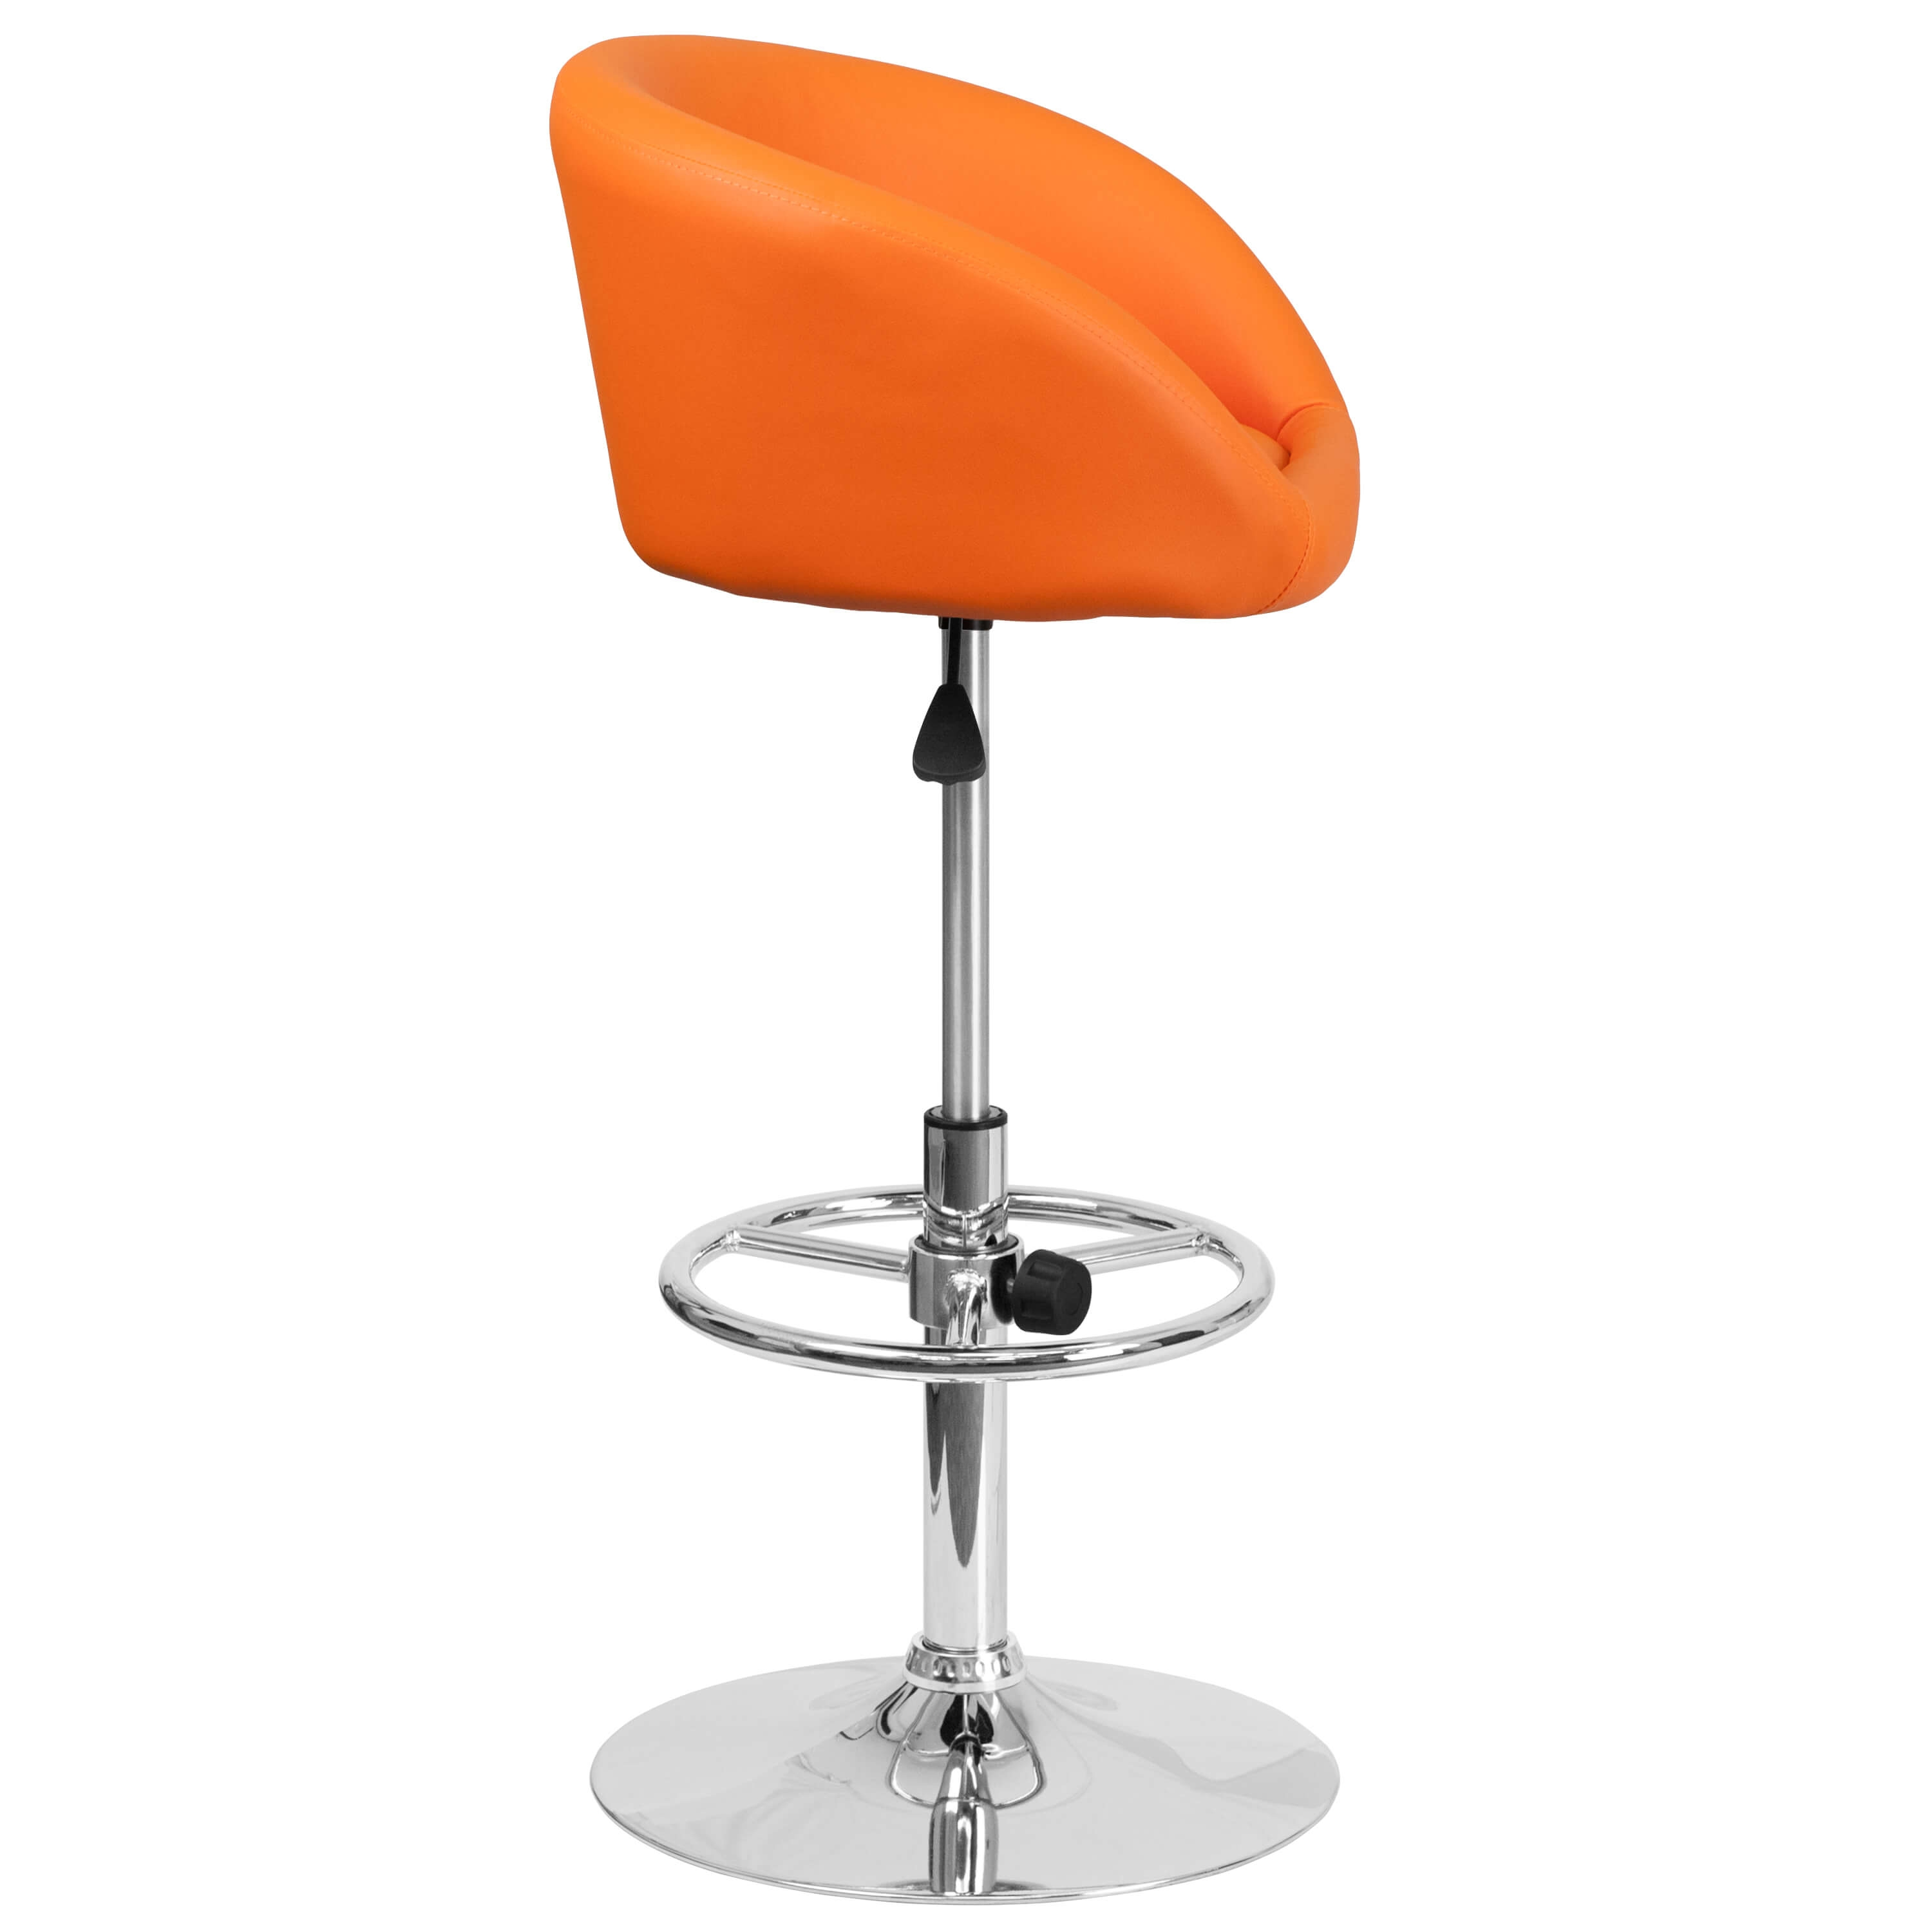 Adjustable colorful bar stools side view